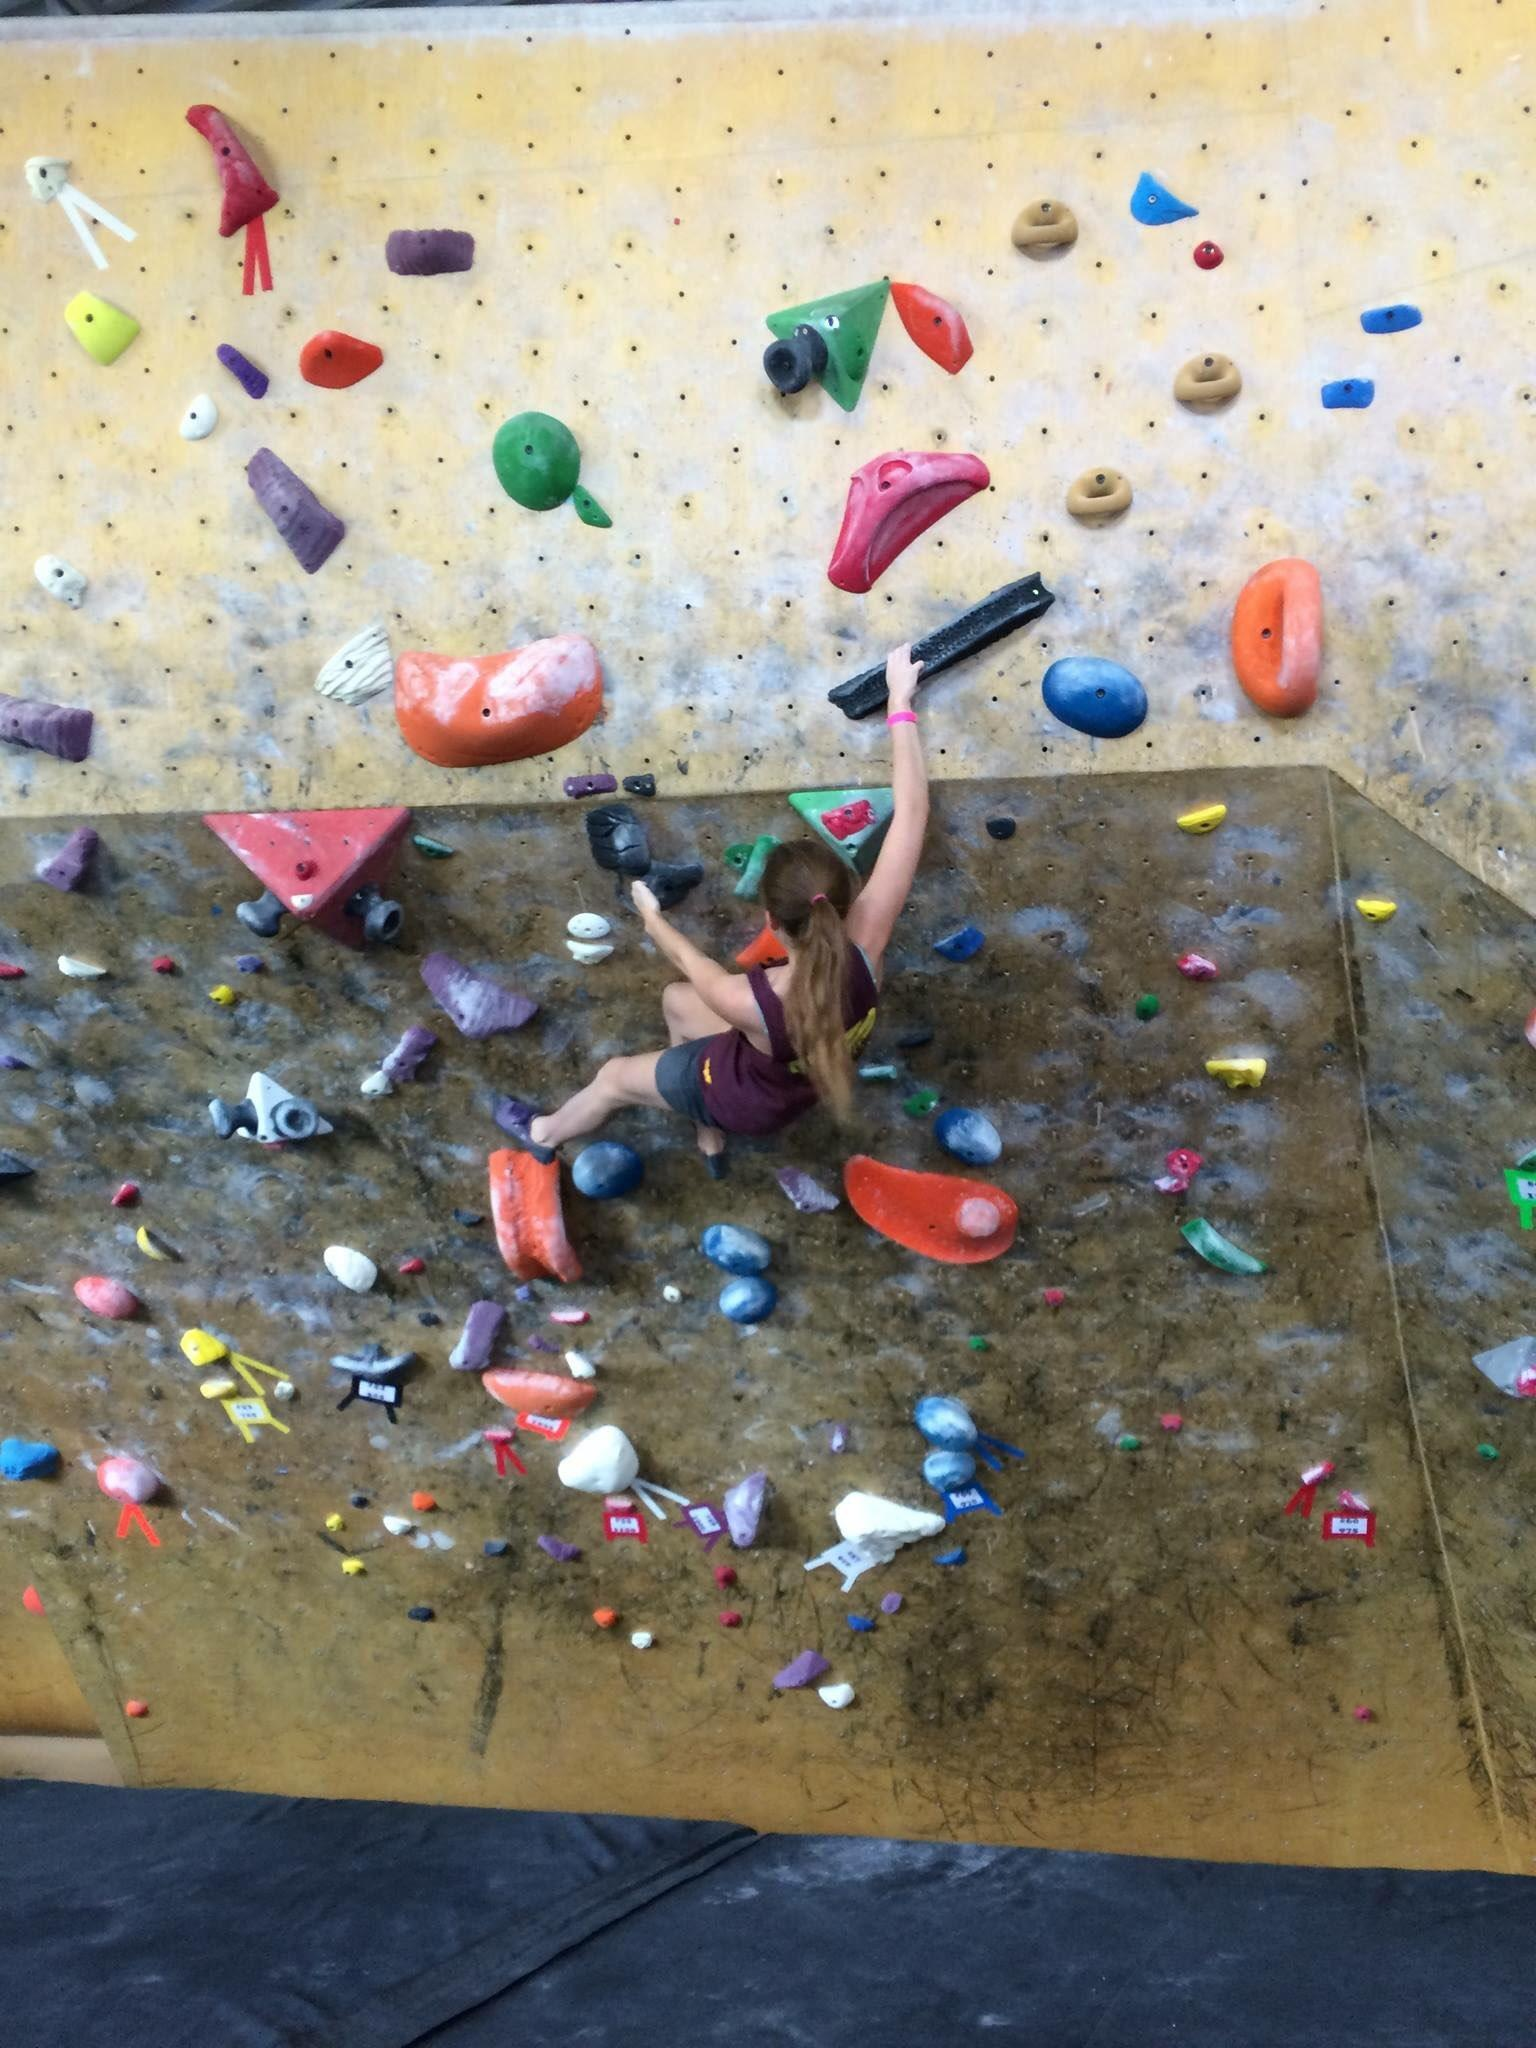 A member of the University of Utah's official climbing club.